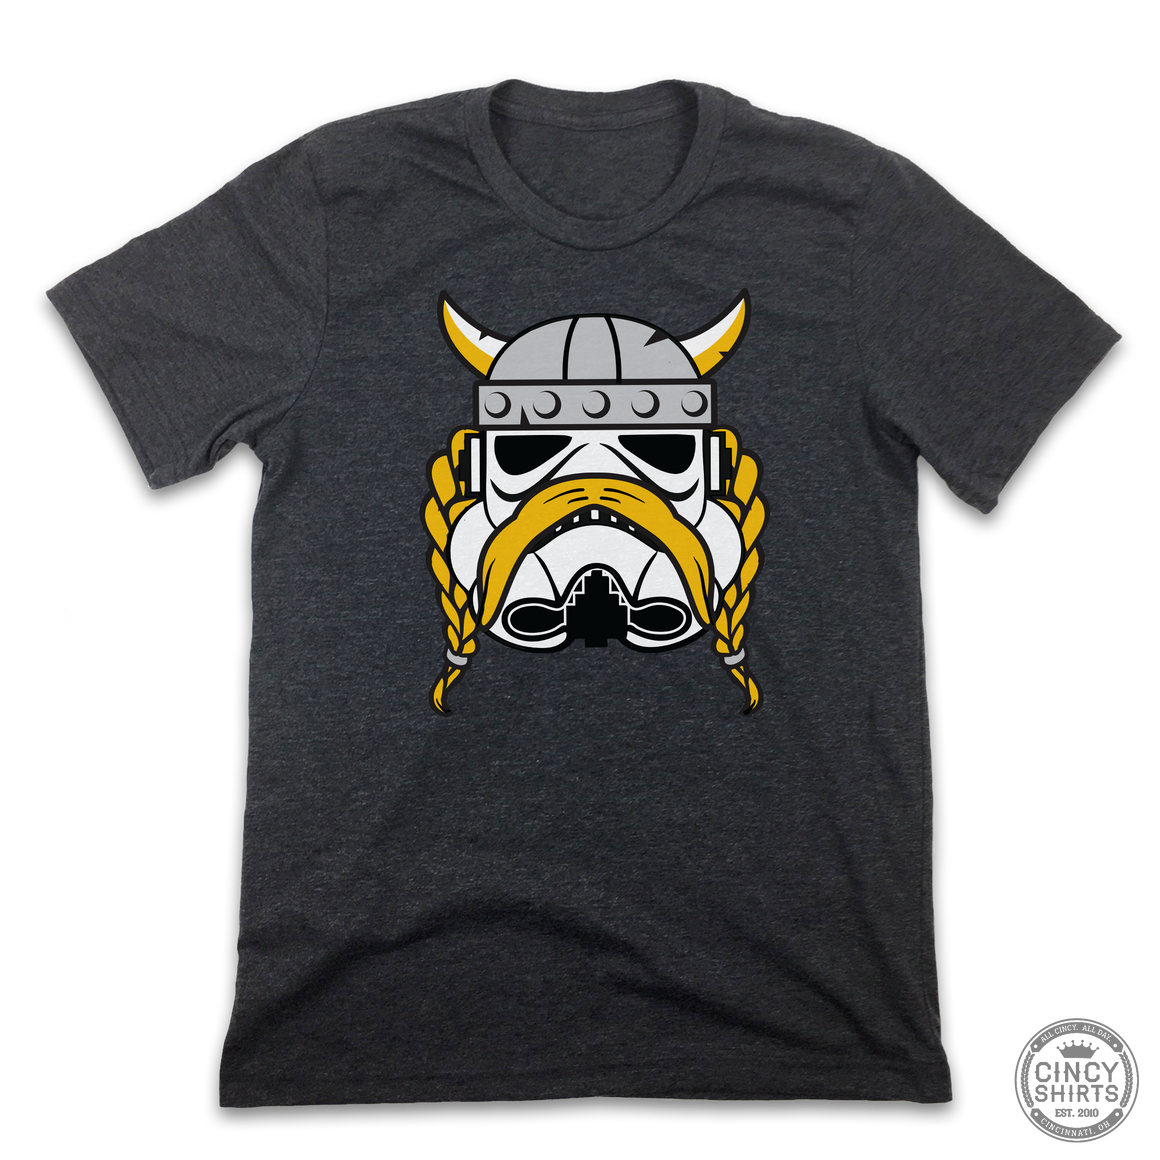 NKU Trooper - Cincy Shirts